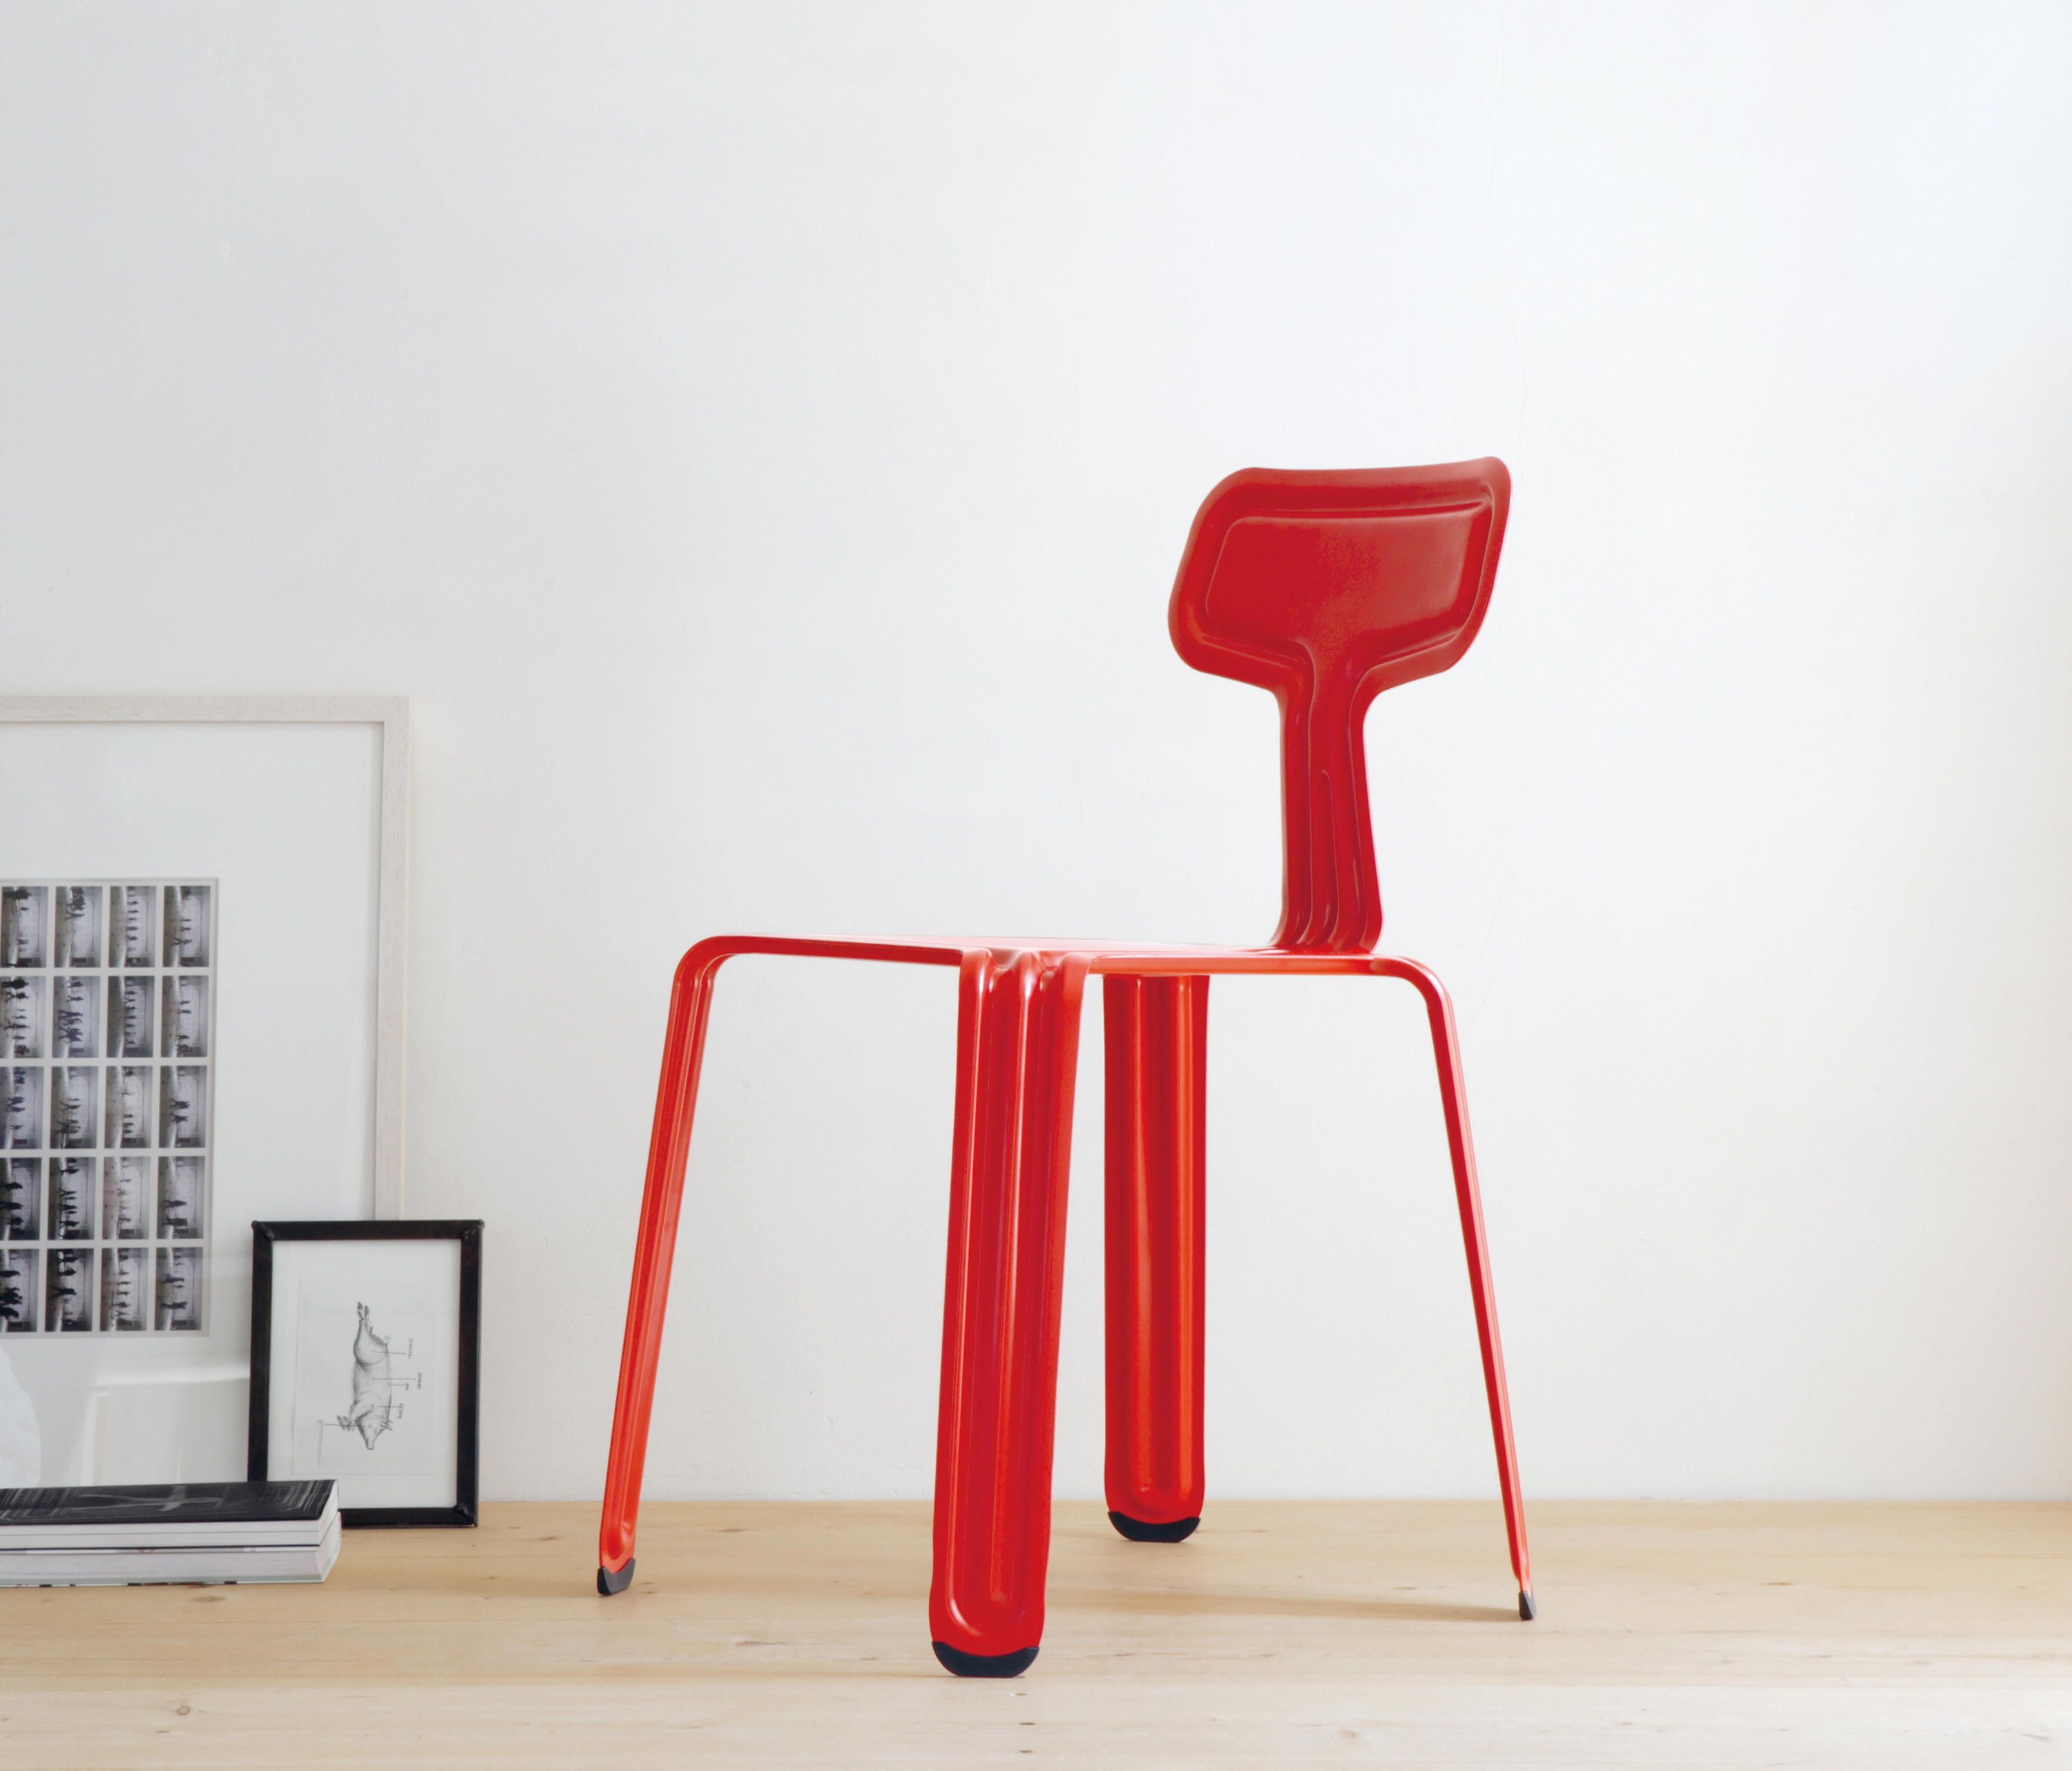 Moormann Pressed Chair Designed By Harry Thaler Made Out Of One  # Muebles Nadir Escalada